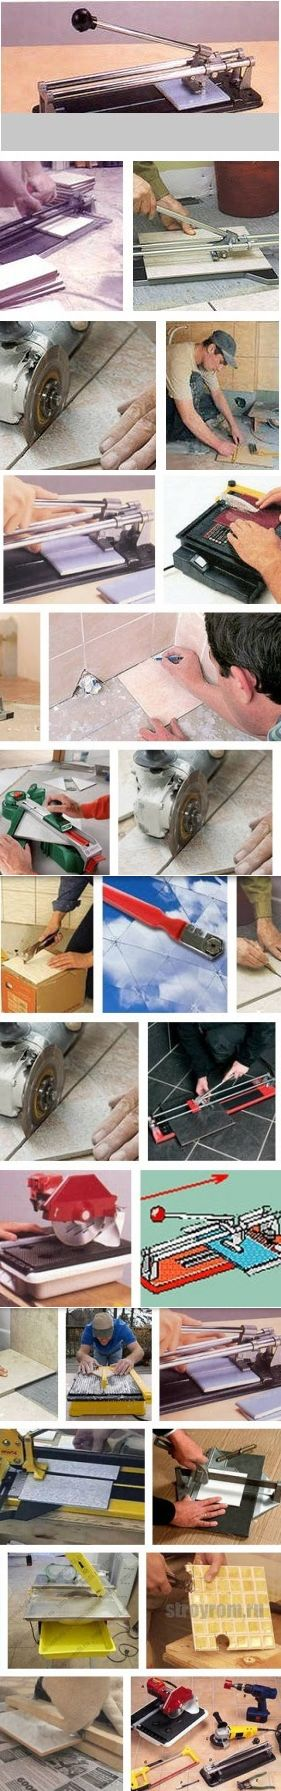 How quickly independently to learn to cut a tiled, ceramic tile or a tile from porcelain tile in house conditions. The tool and materials for independent cutting of a ceramic tile - Repair and design of the house the hands